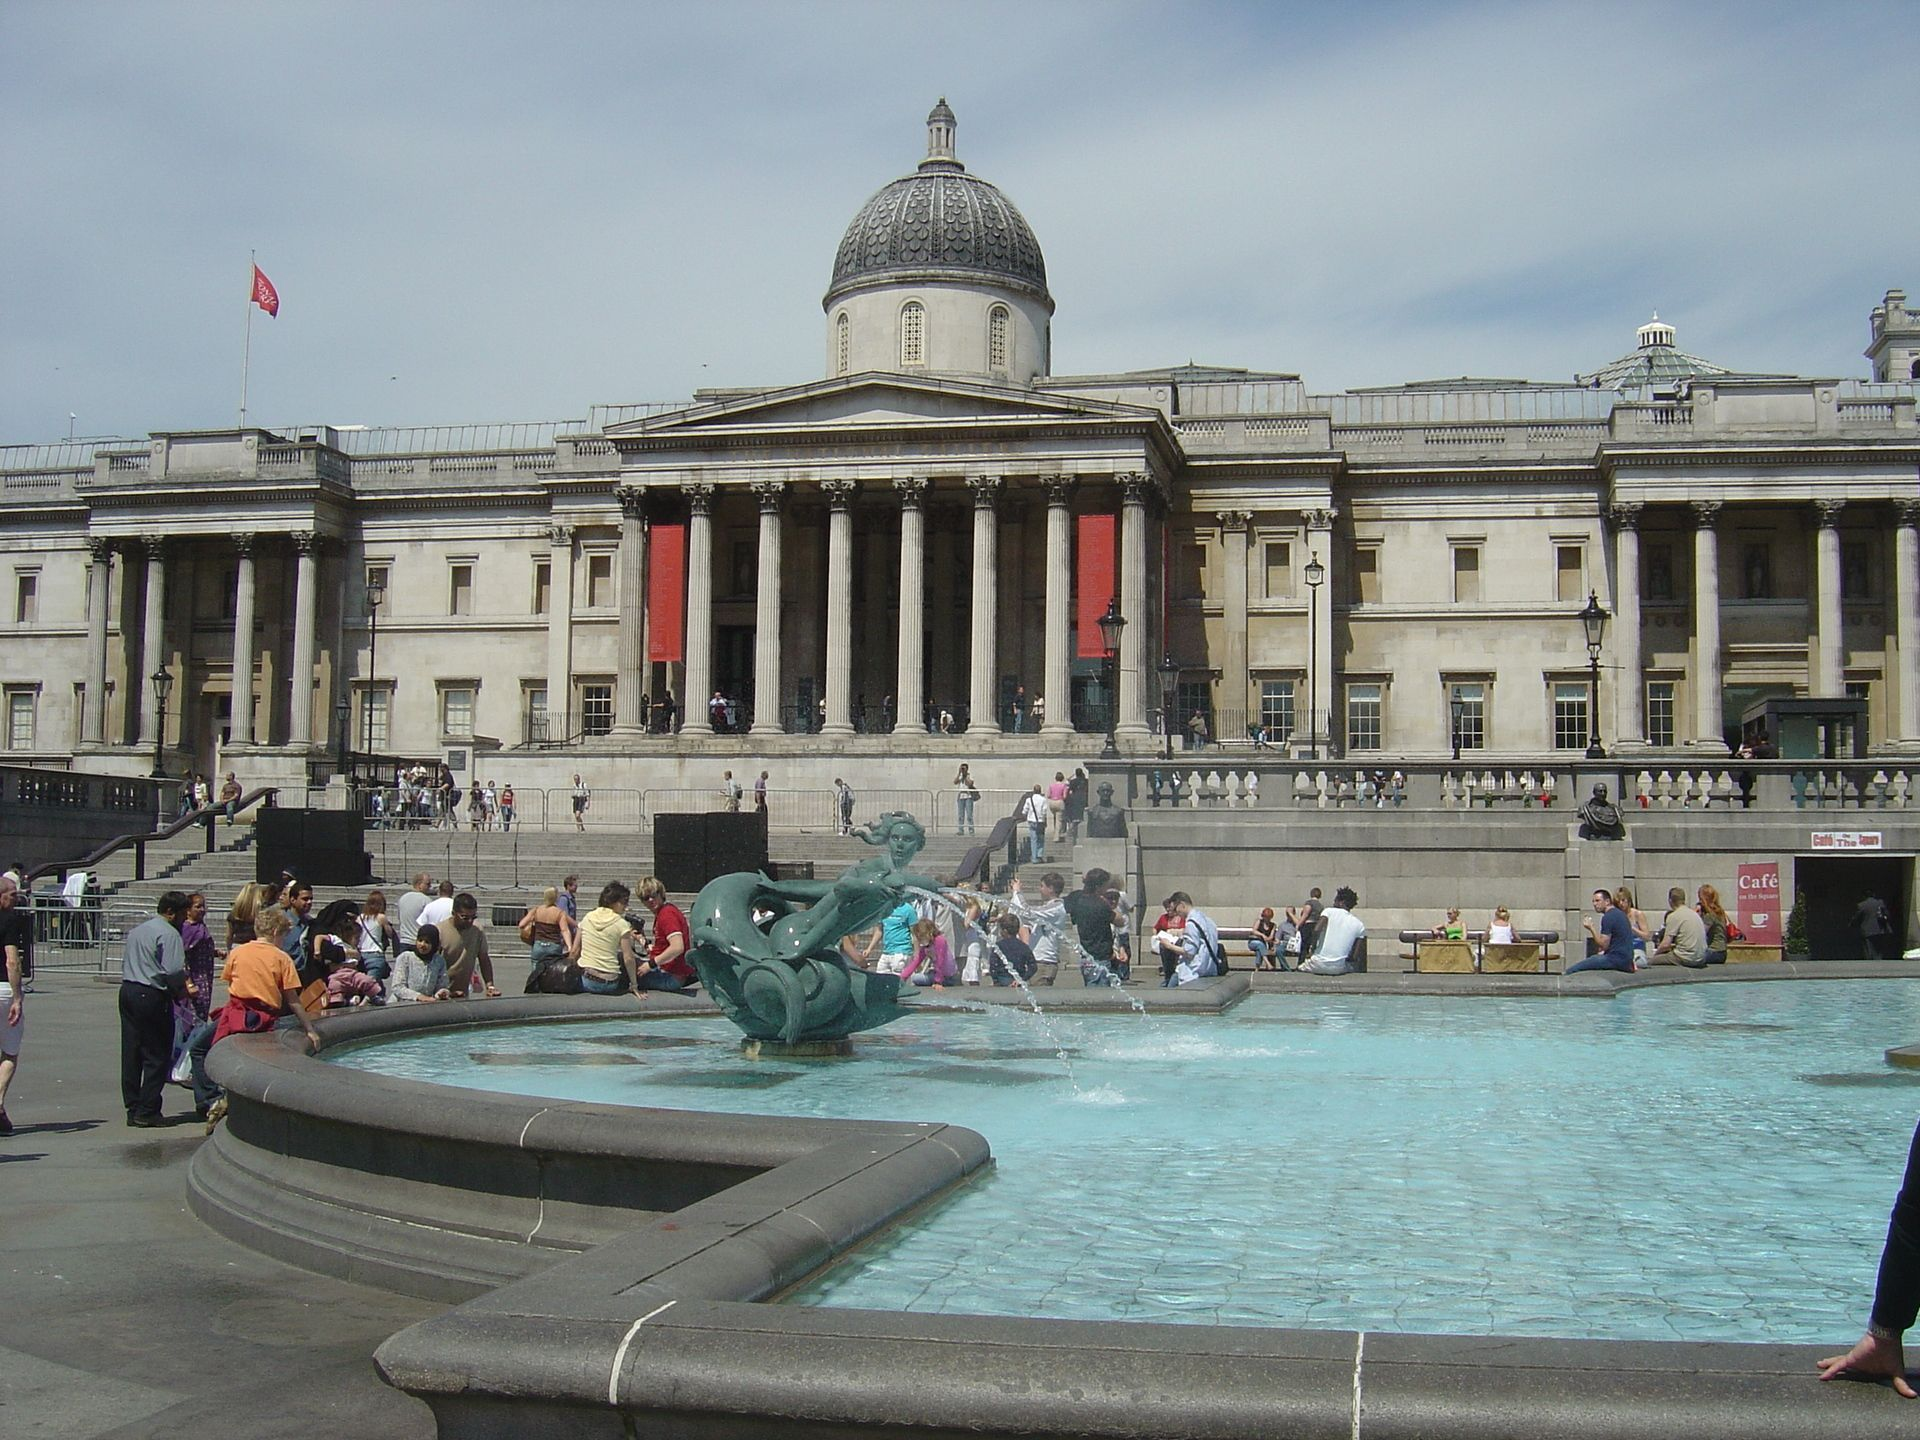 Trafalgar Square in London; the building at the back is the National Gallery Museum.